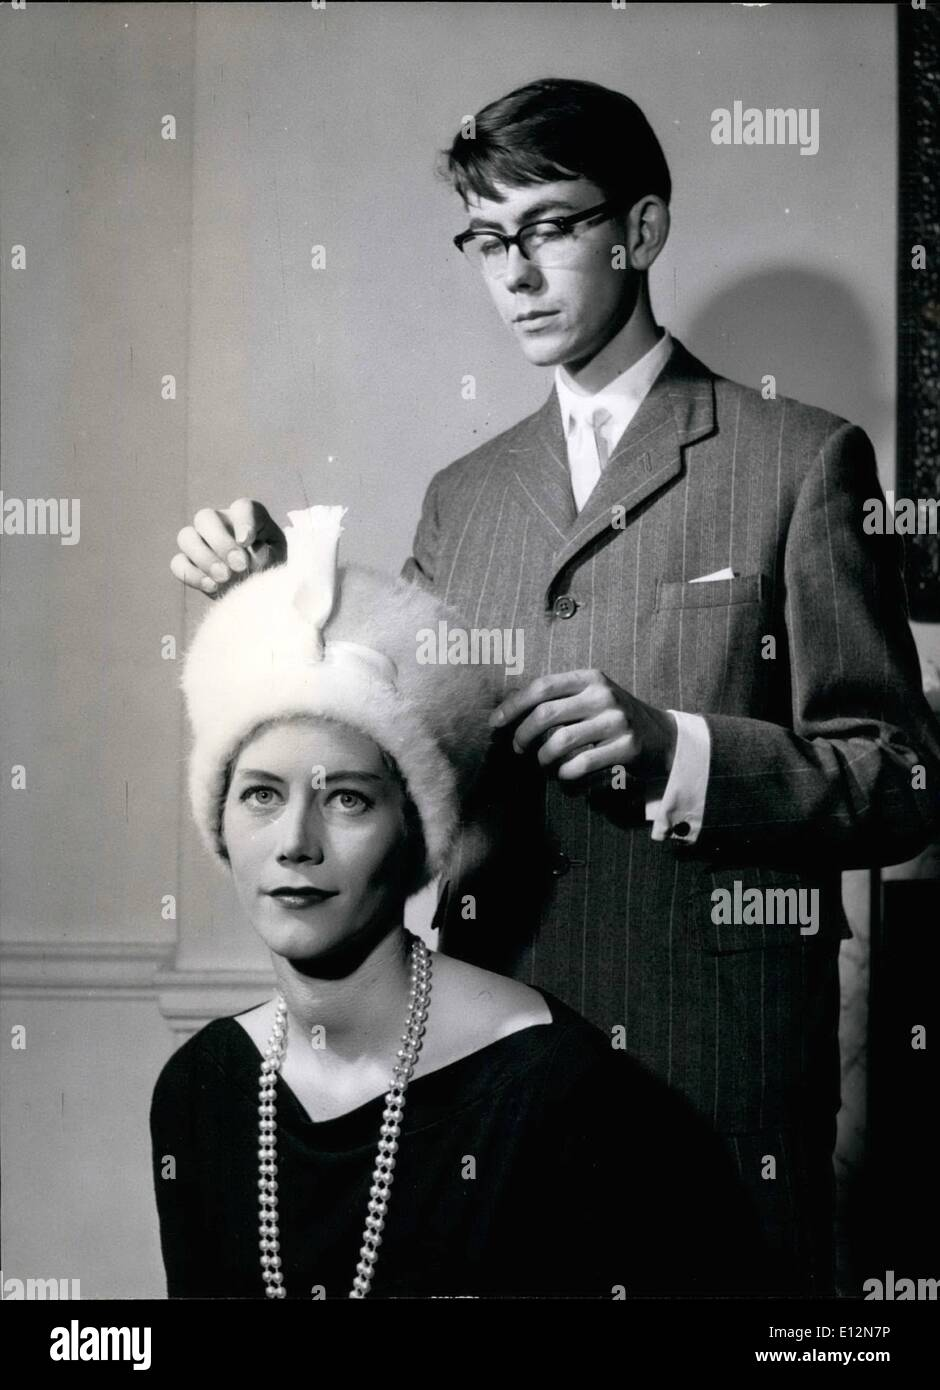 Feb. 24, 2012 - The milliner sees his hat is on correctly: Graham Smith with a model wearing a Hussar-styled hat. - Stock Image